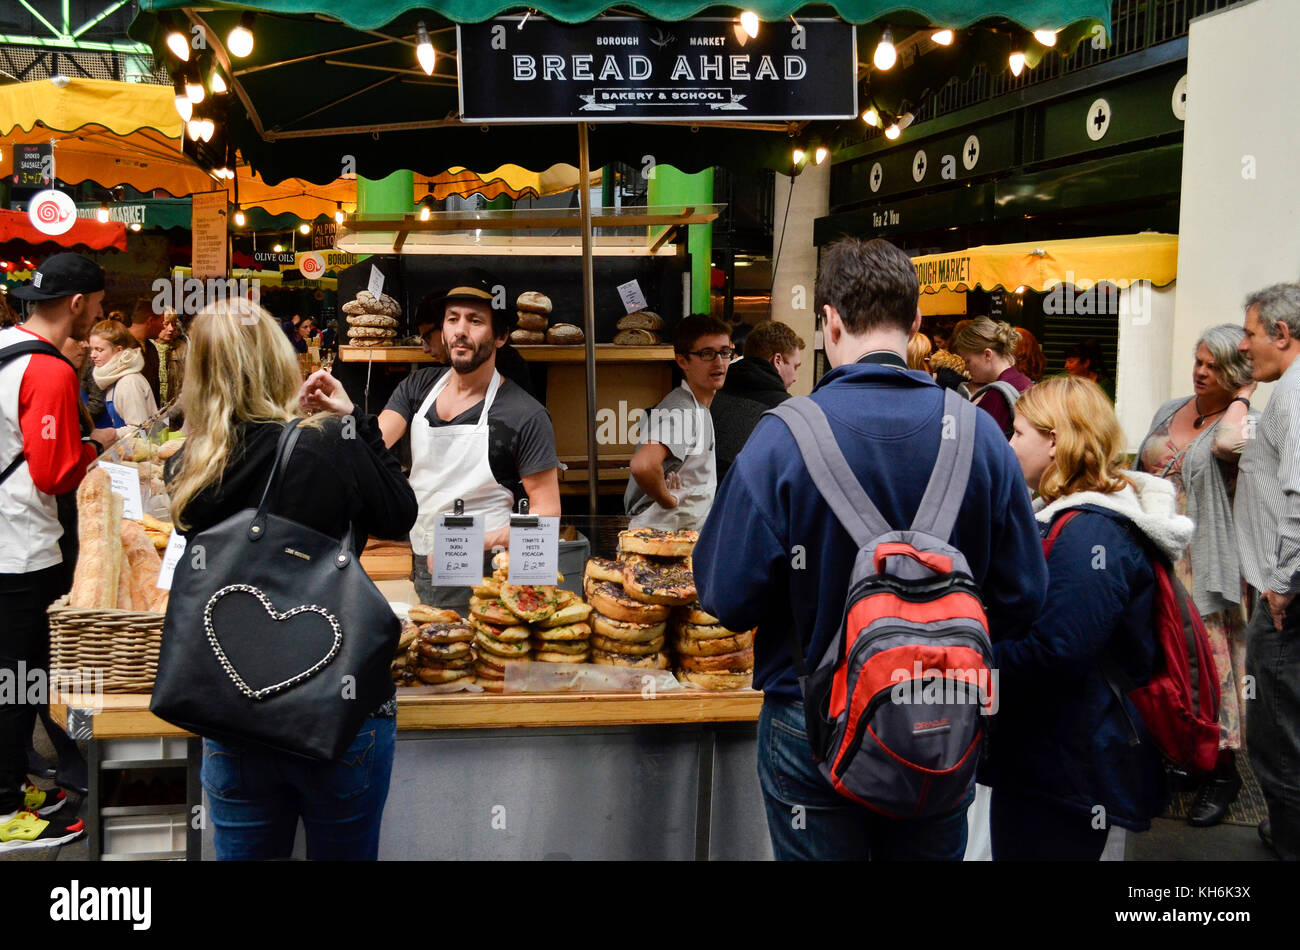 Borough Market, London, UK. - Stock Image